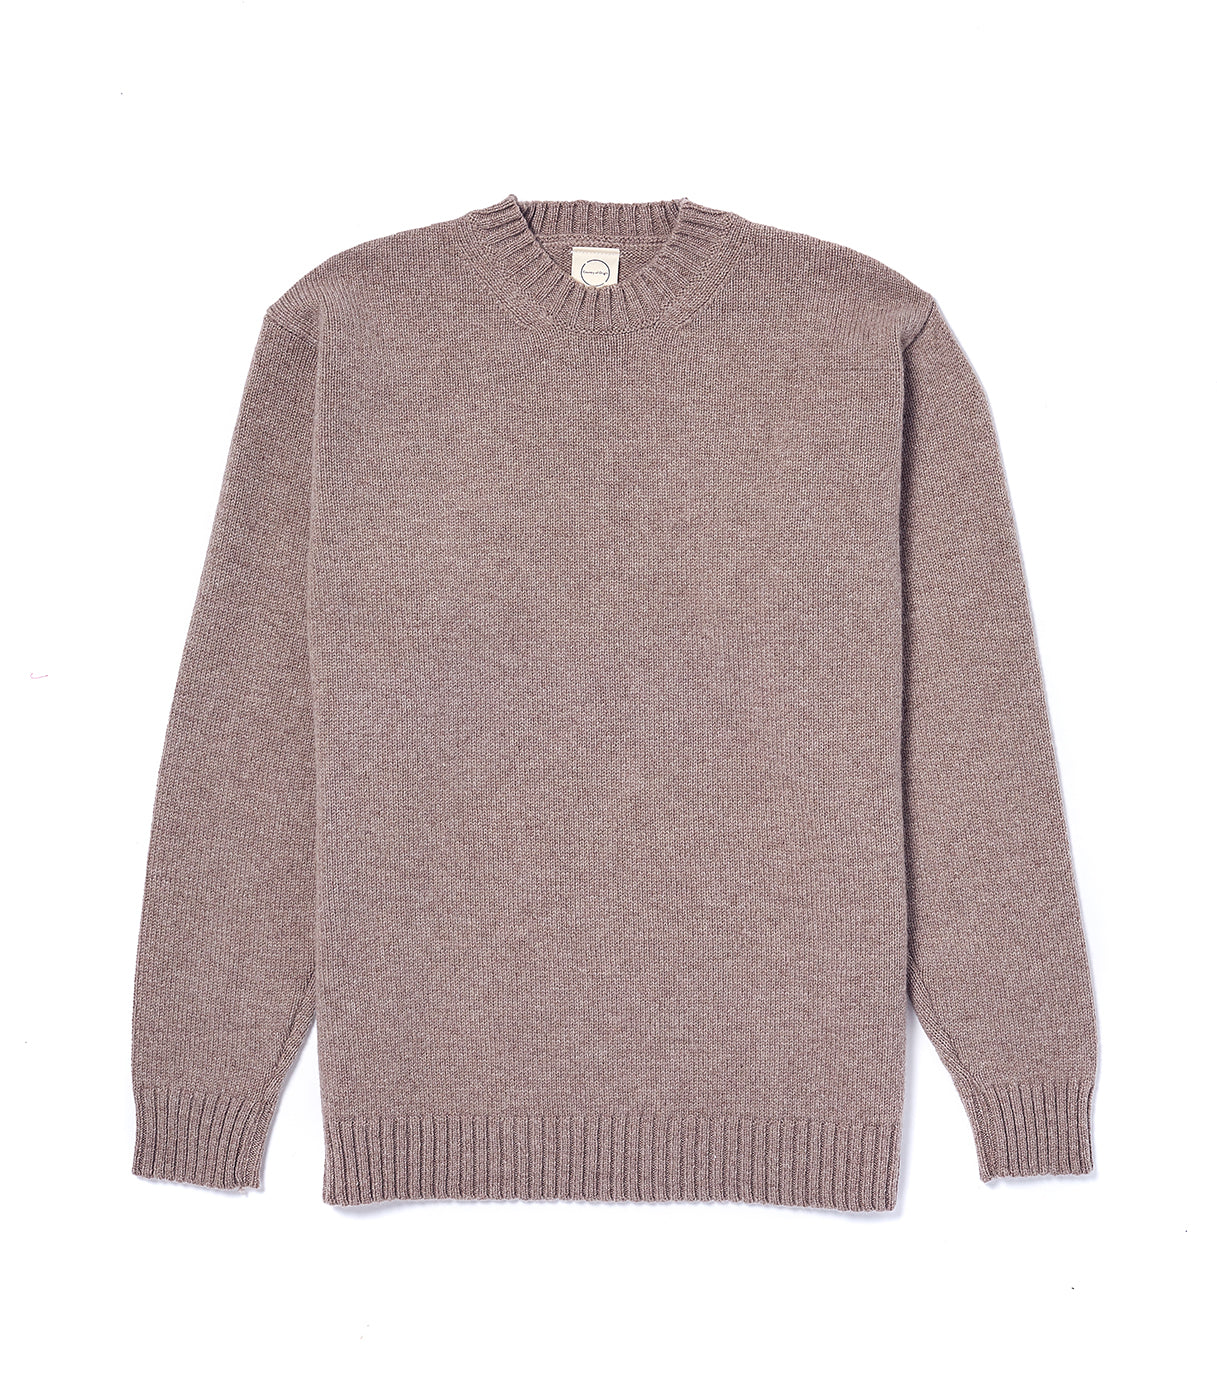 Staple Lambswool Sweater • Oatmeal